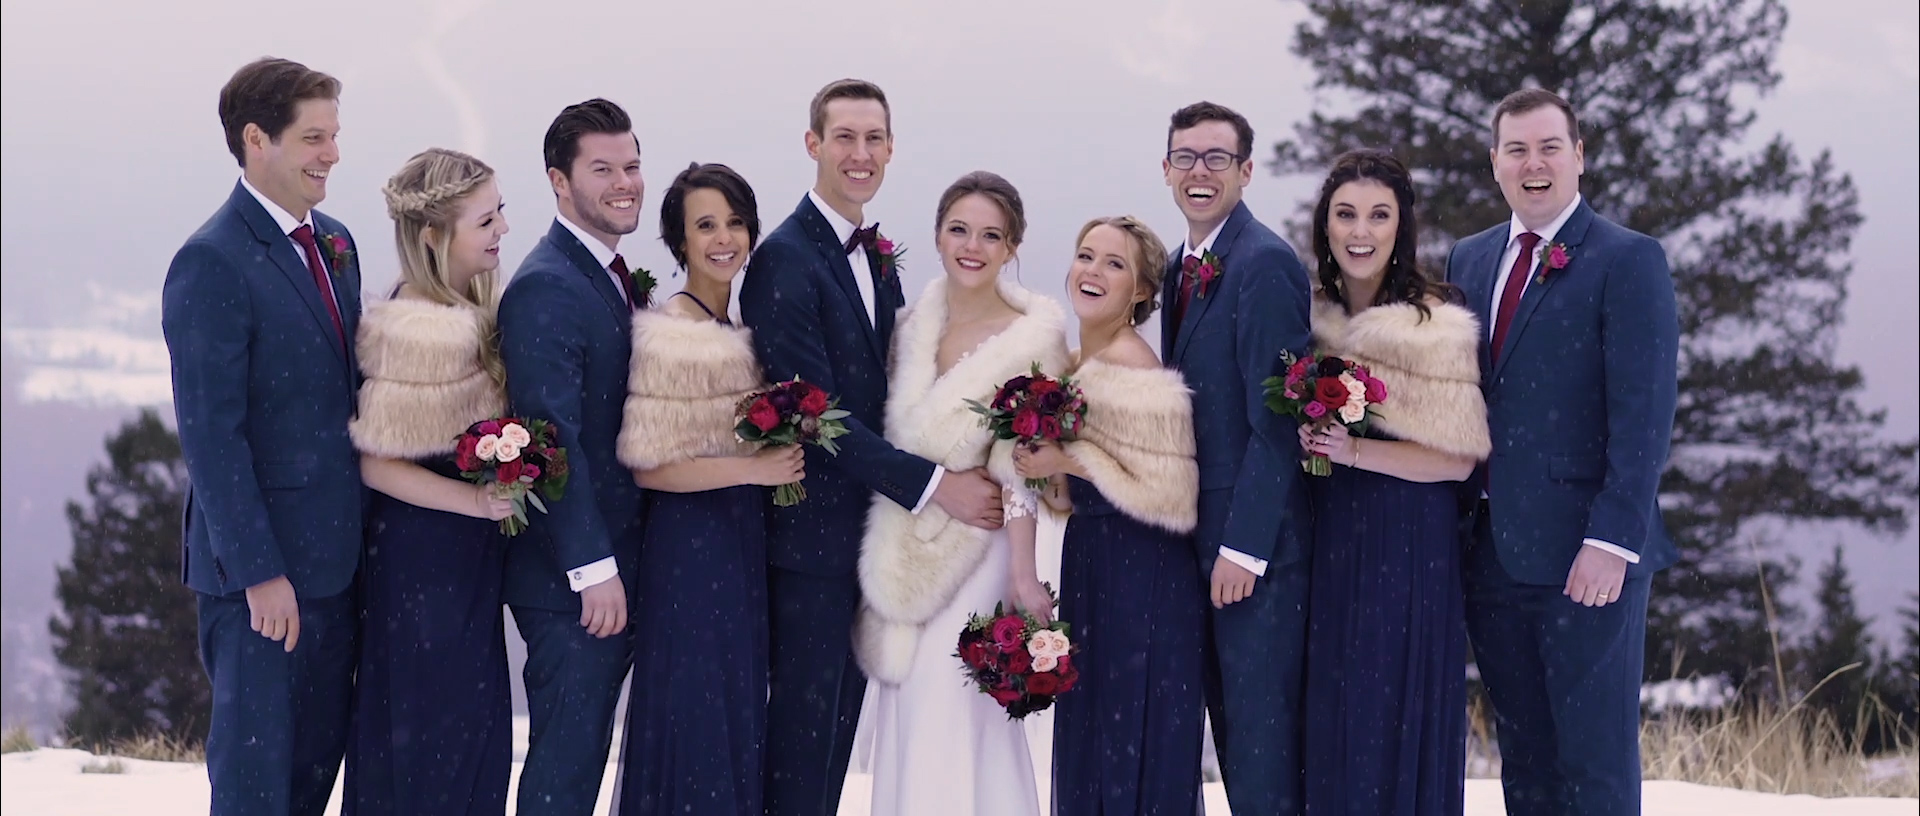 The bride + groom and their attendants having a great time as the snow falls!